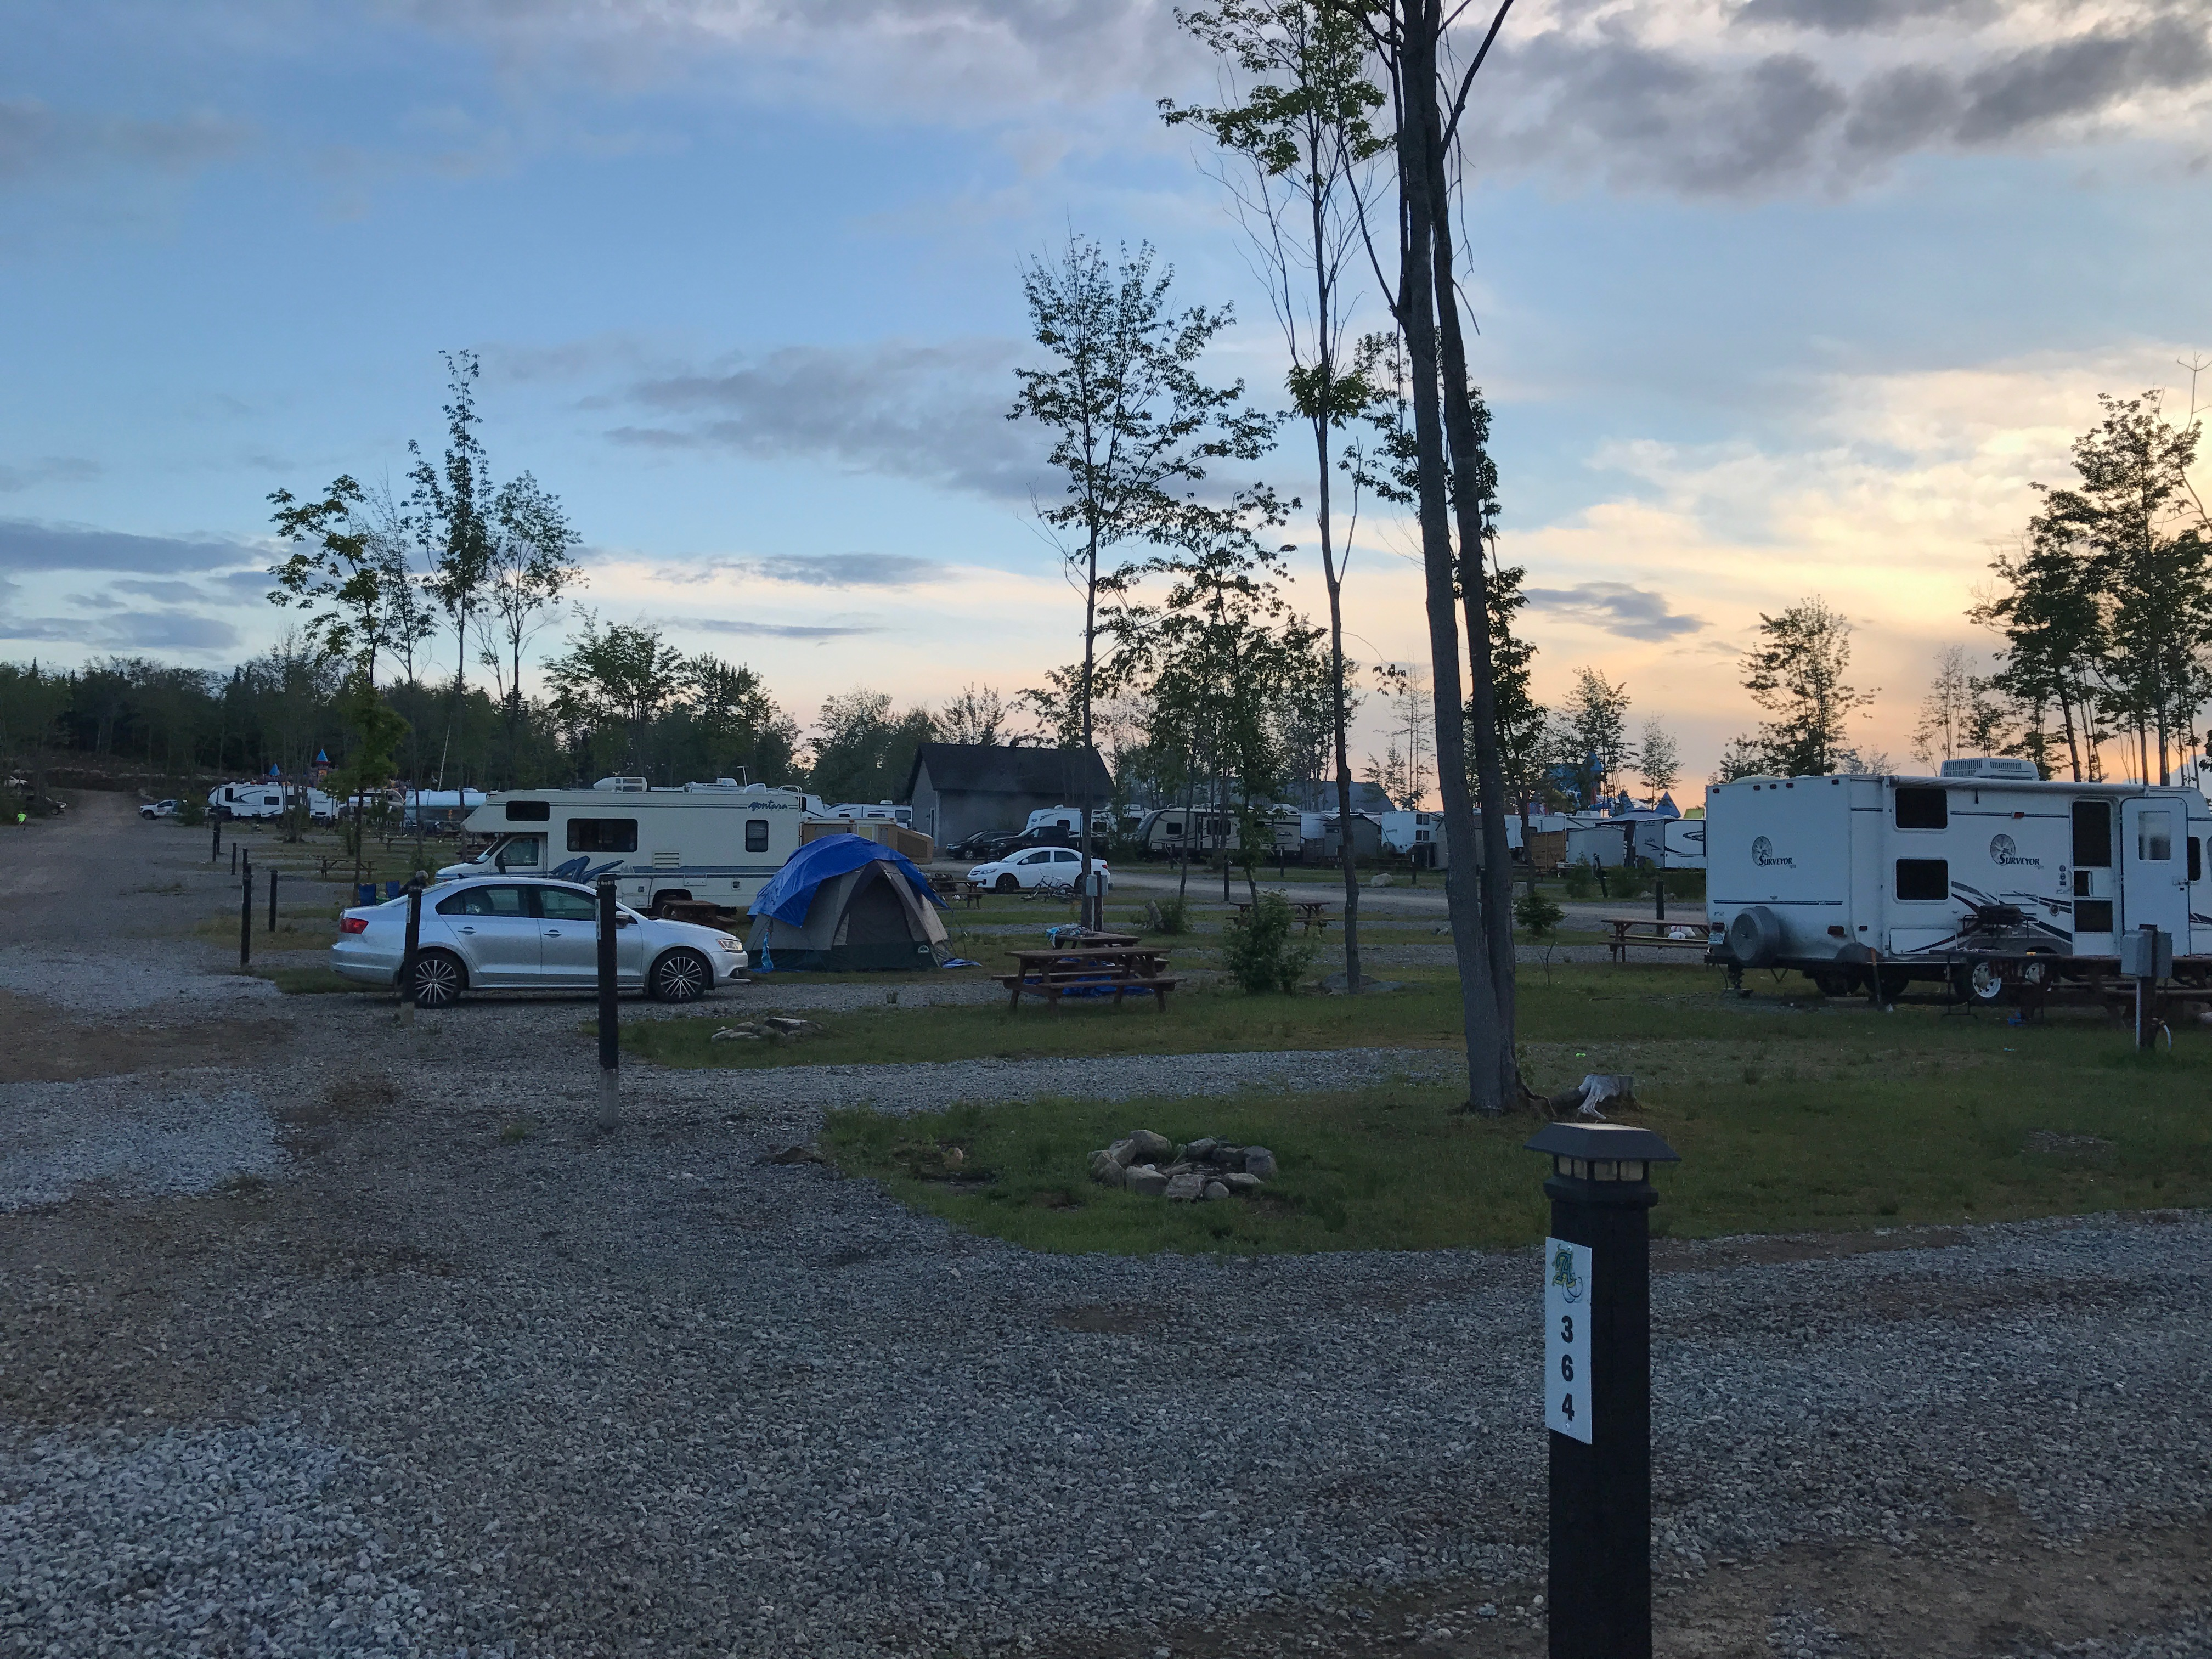 http://www.familycampgrounds.ca/wp-content/uploads/2018/01/camping-familial-complexe-atlantide-infra-8.jpg